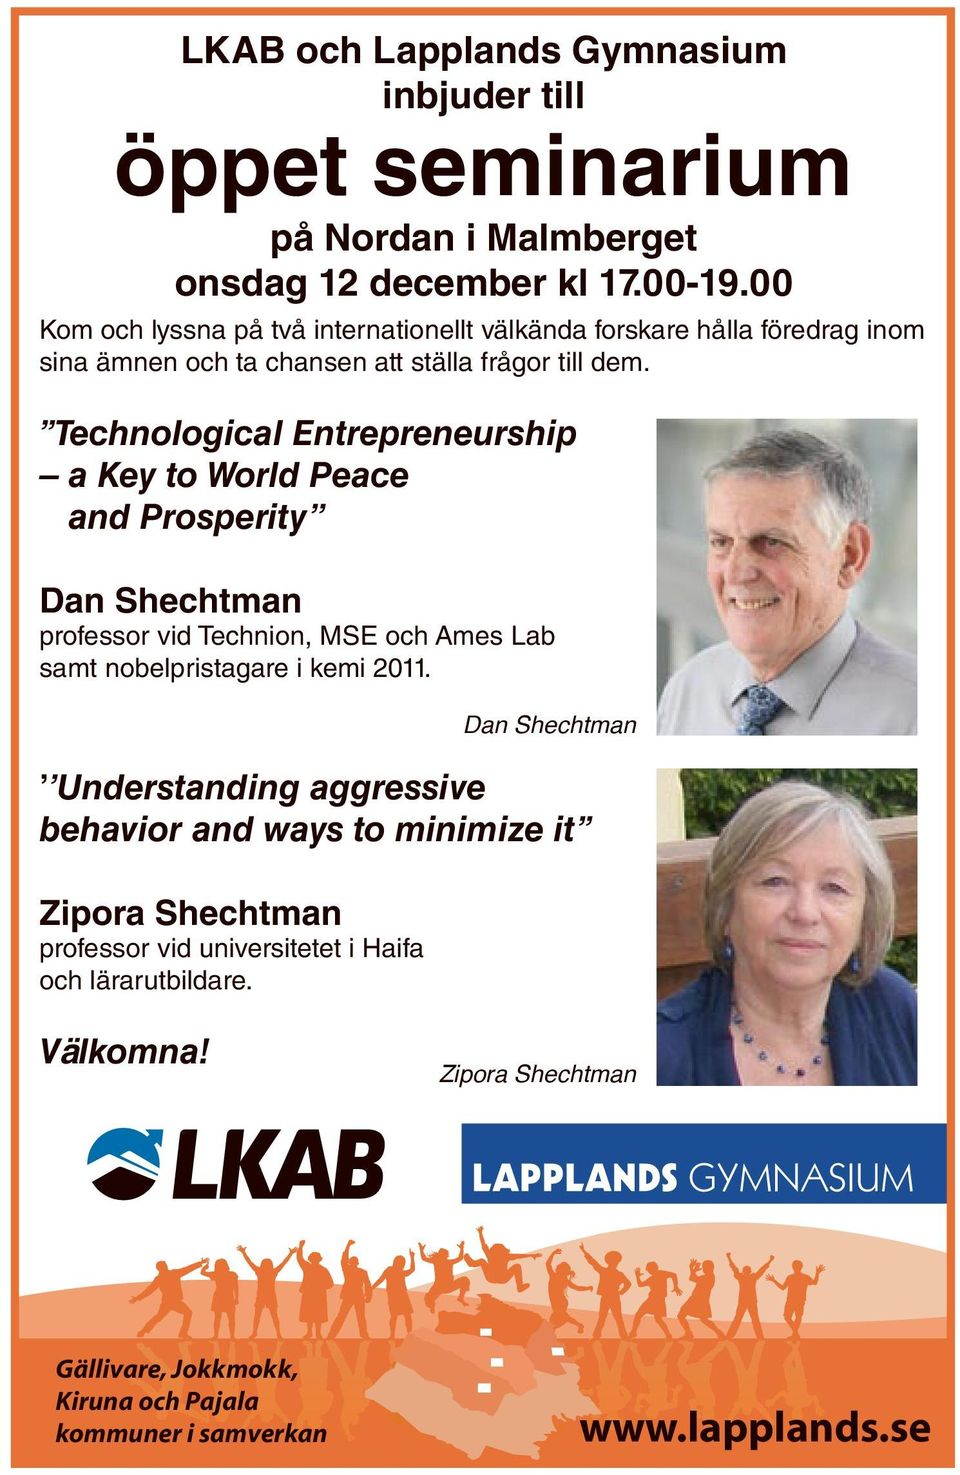 Technological Entrepreneurship a Key to World Peace and Prosperity Dan Shechtman professor vid Technion, MSE och Ames Lab samt nobelpristagare i kemi 2011.